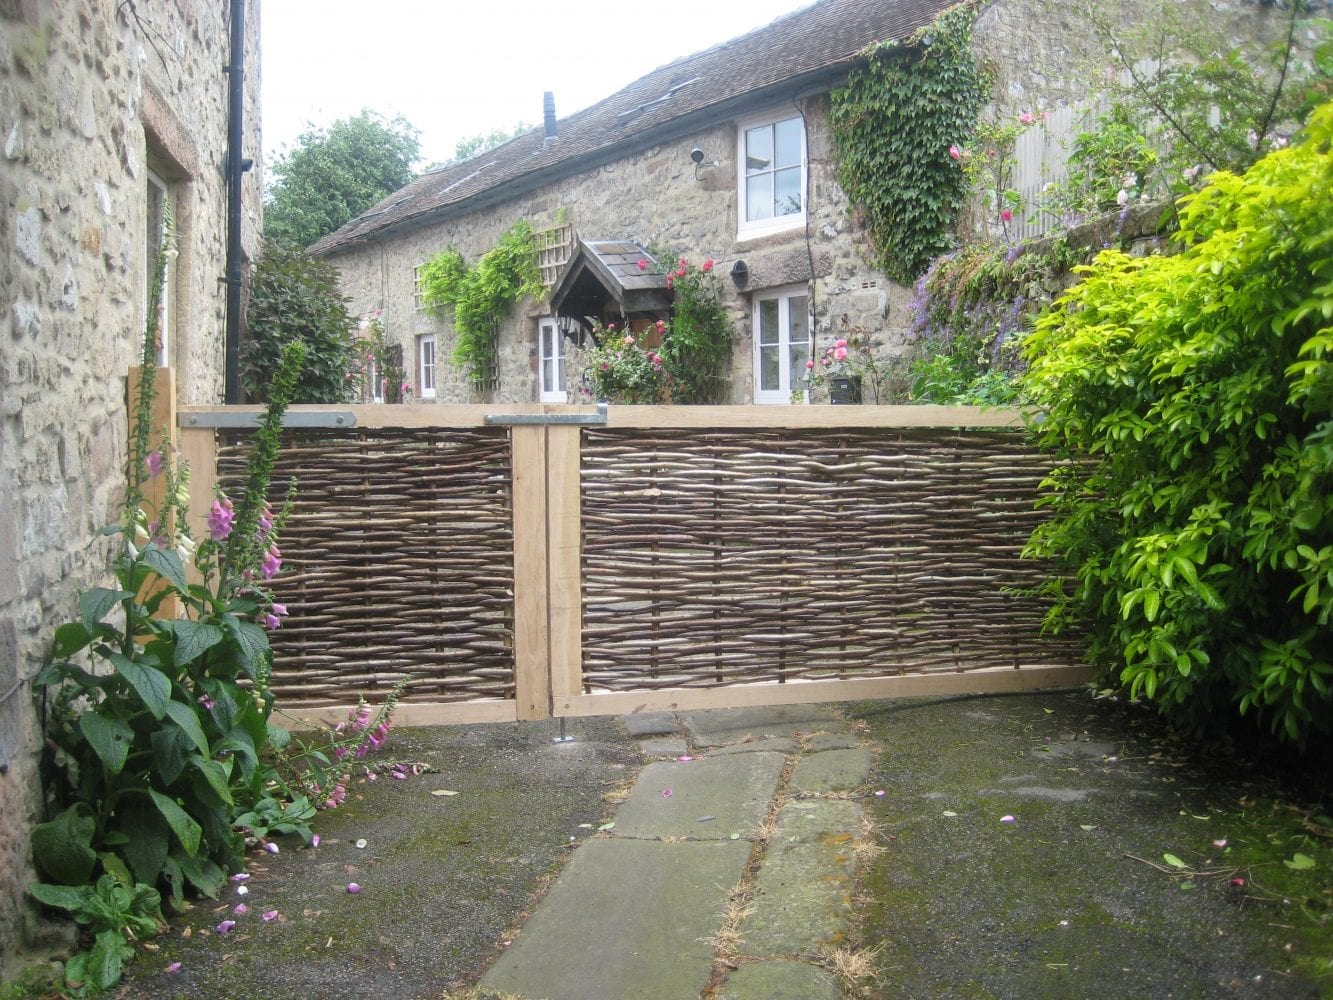 <span>Ref: F36</span><br>Hazel driveway gate 6' x 3'  with pedestrian gate 3' x 3' wide, Winster, Derbyshire; left gate £300 and right gate £560 inc VAT.